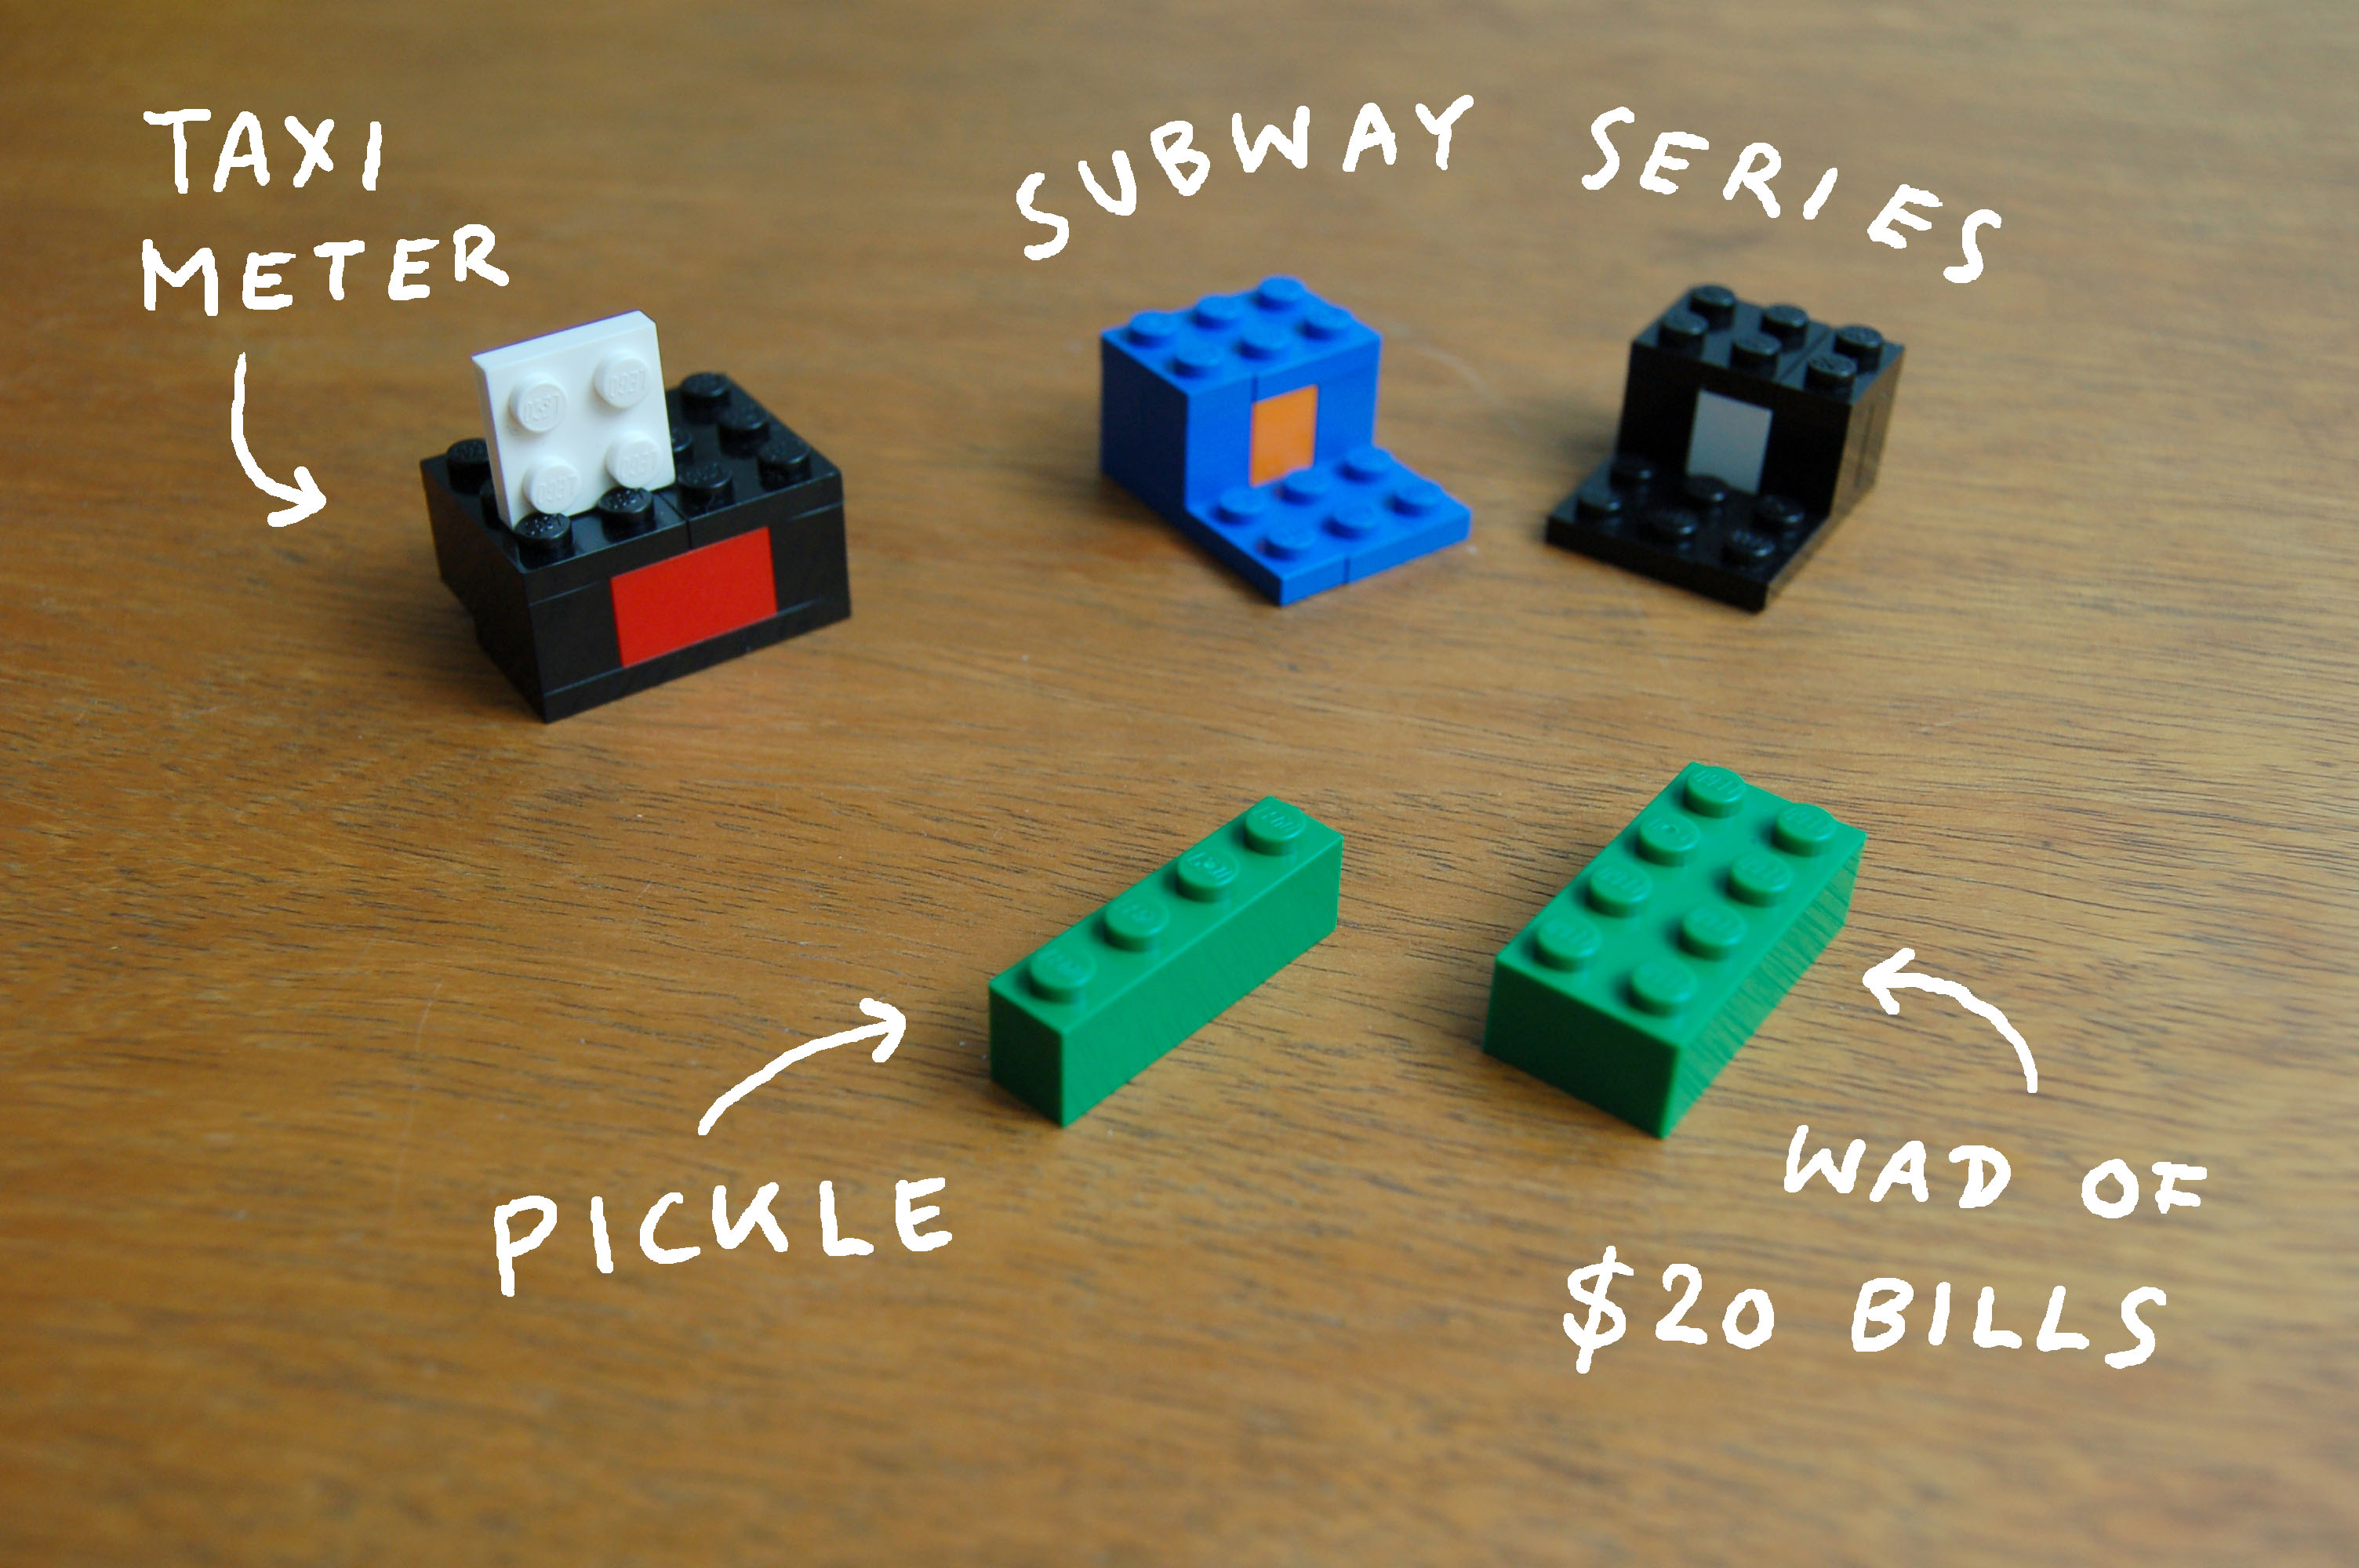 I Lego NY (Memories of New York) from the book Abstract City, 2010